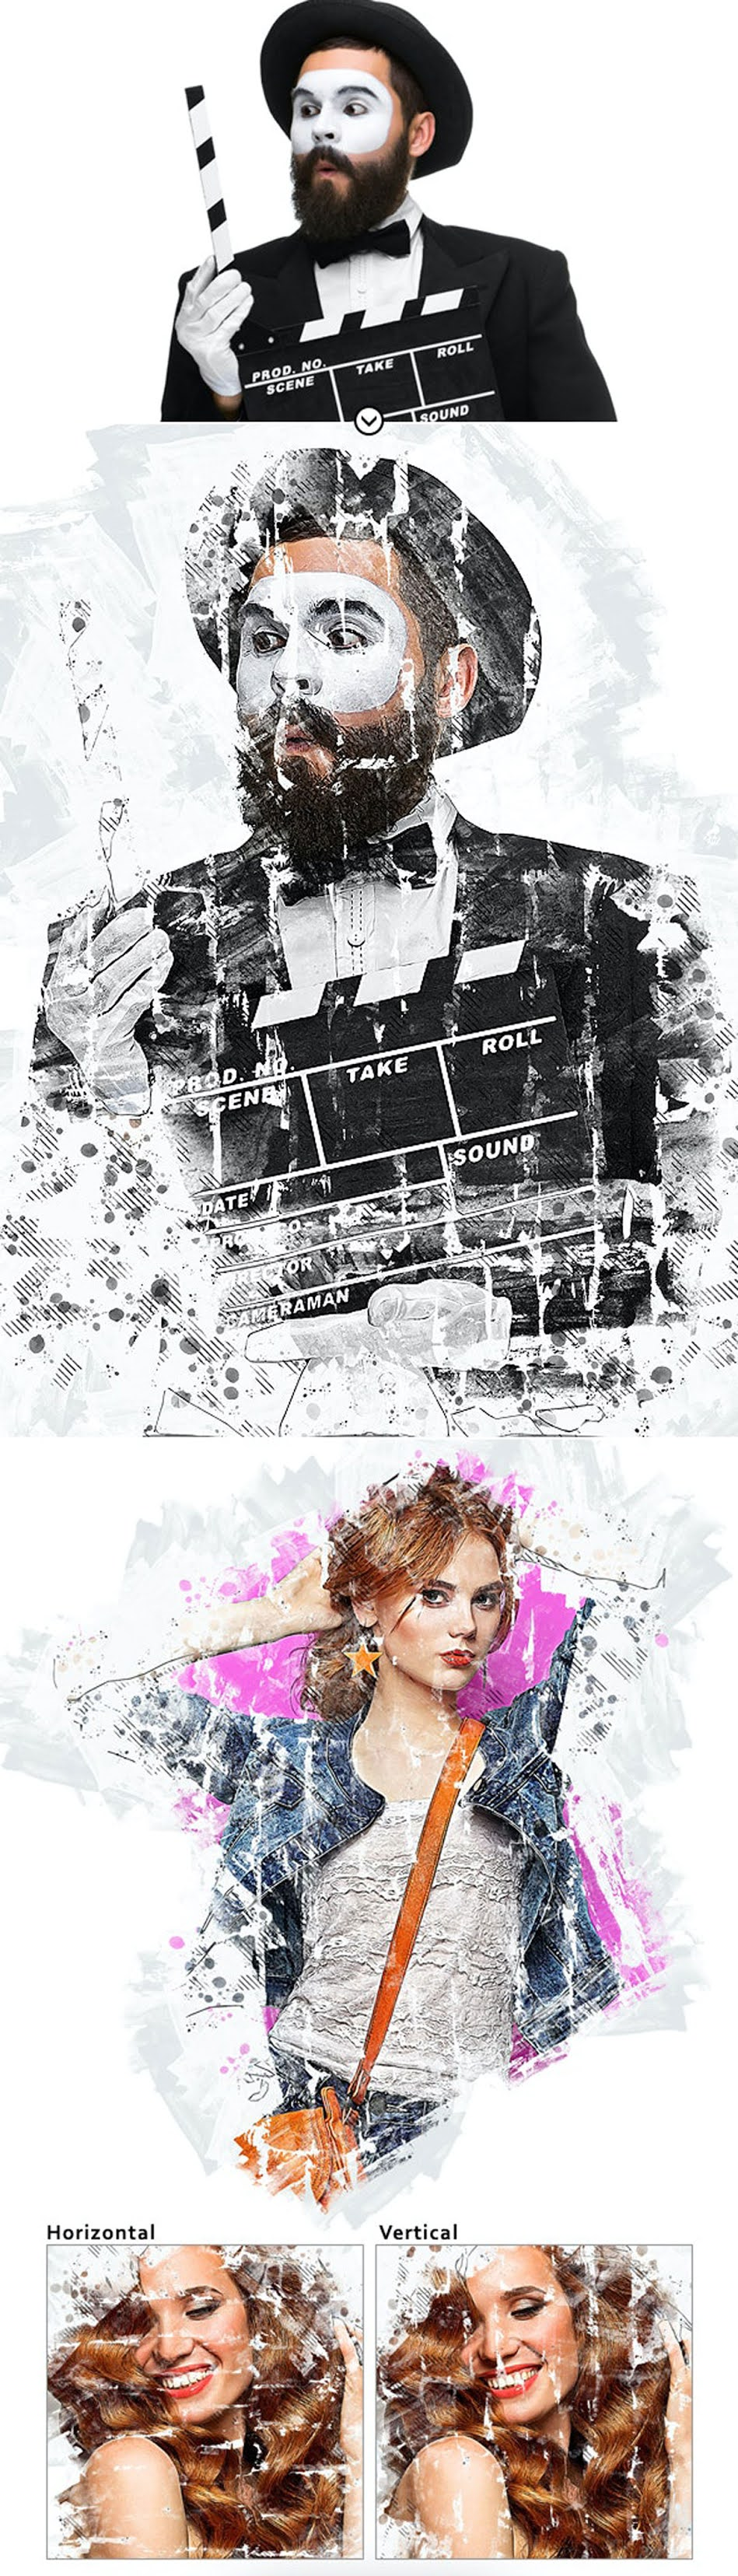 MixArt 4 Photoshop Action 27679860 Free Download